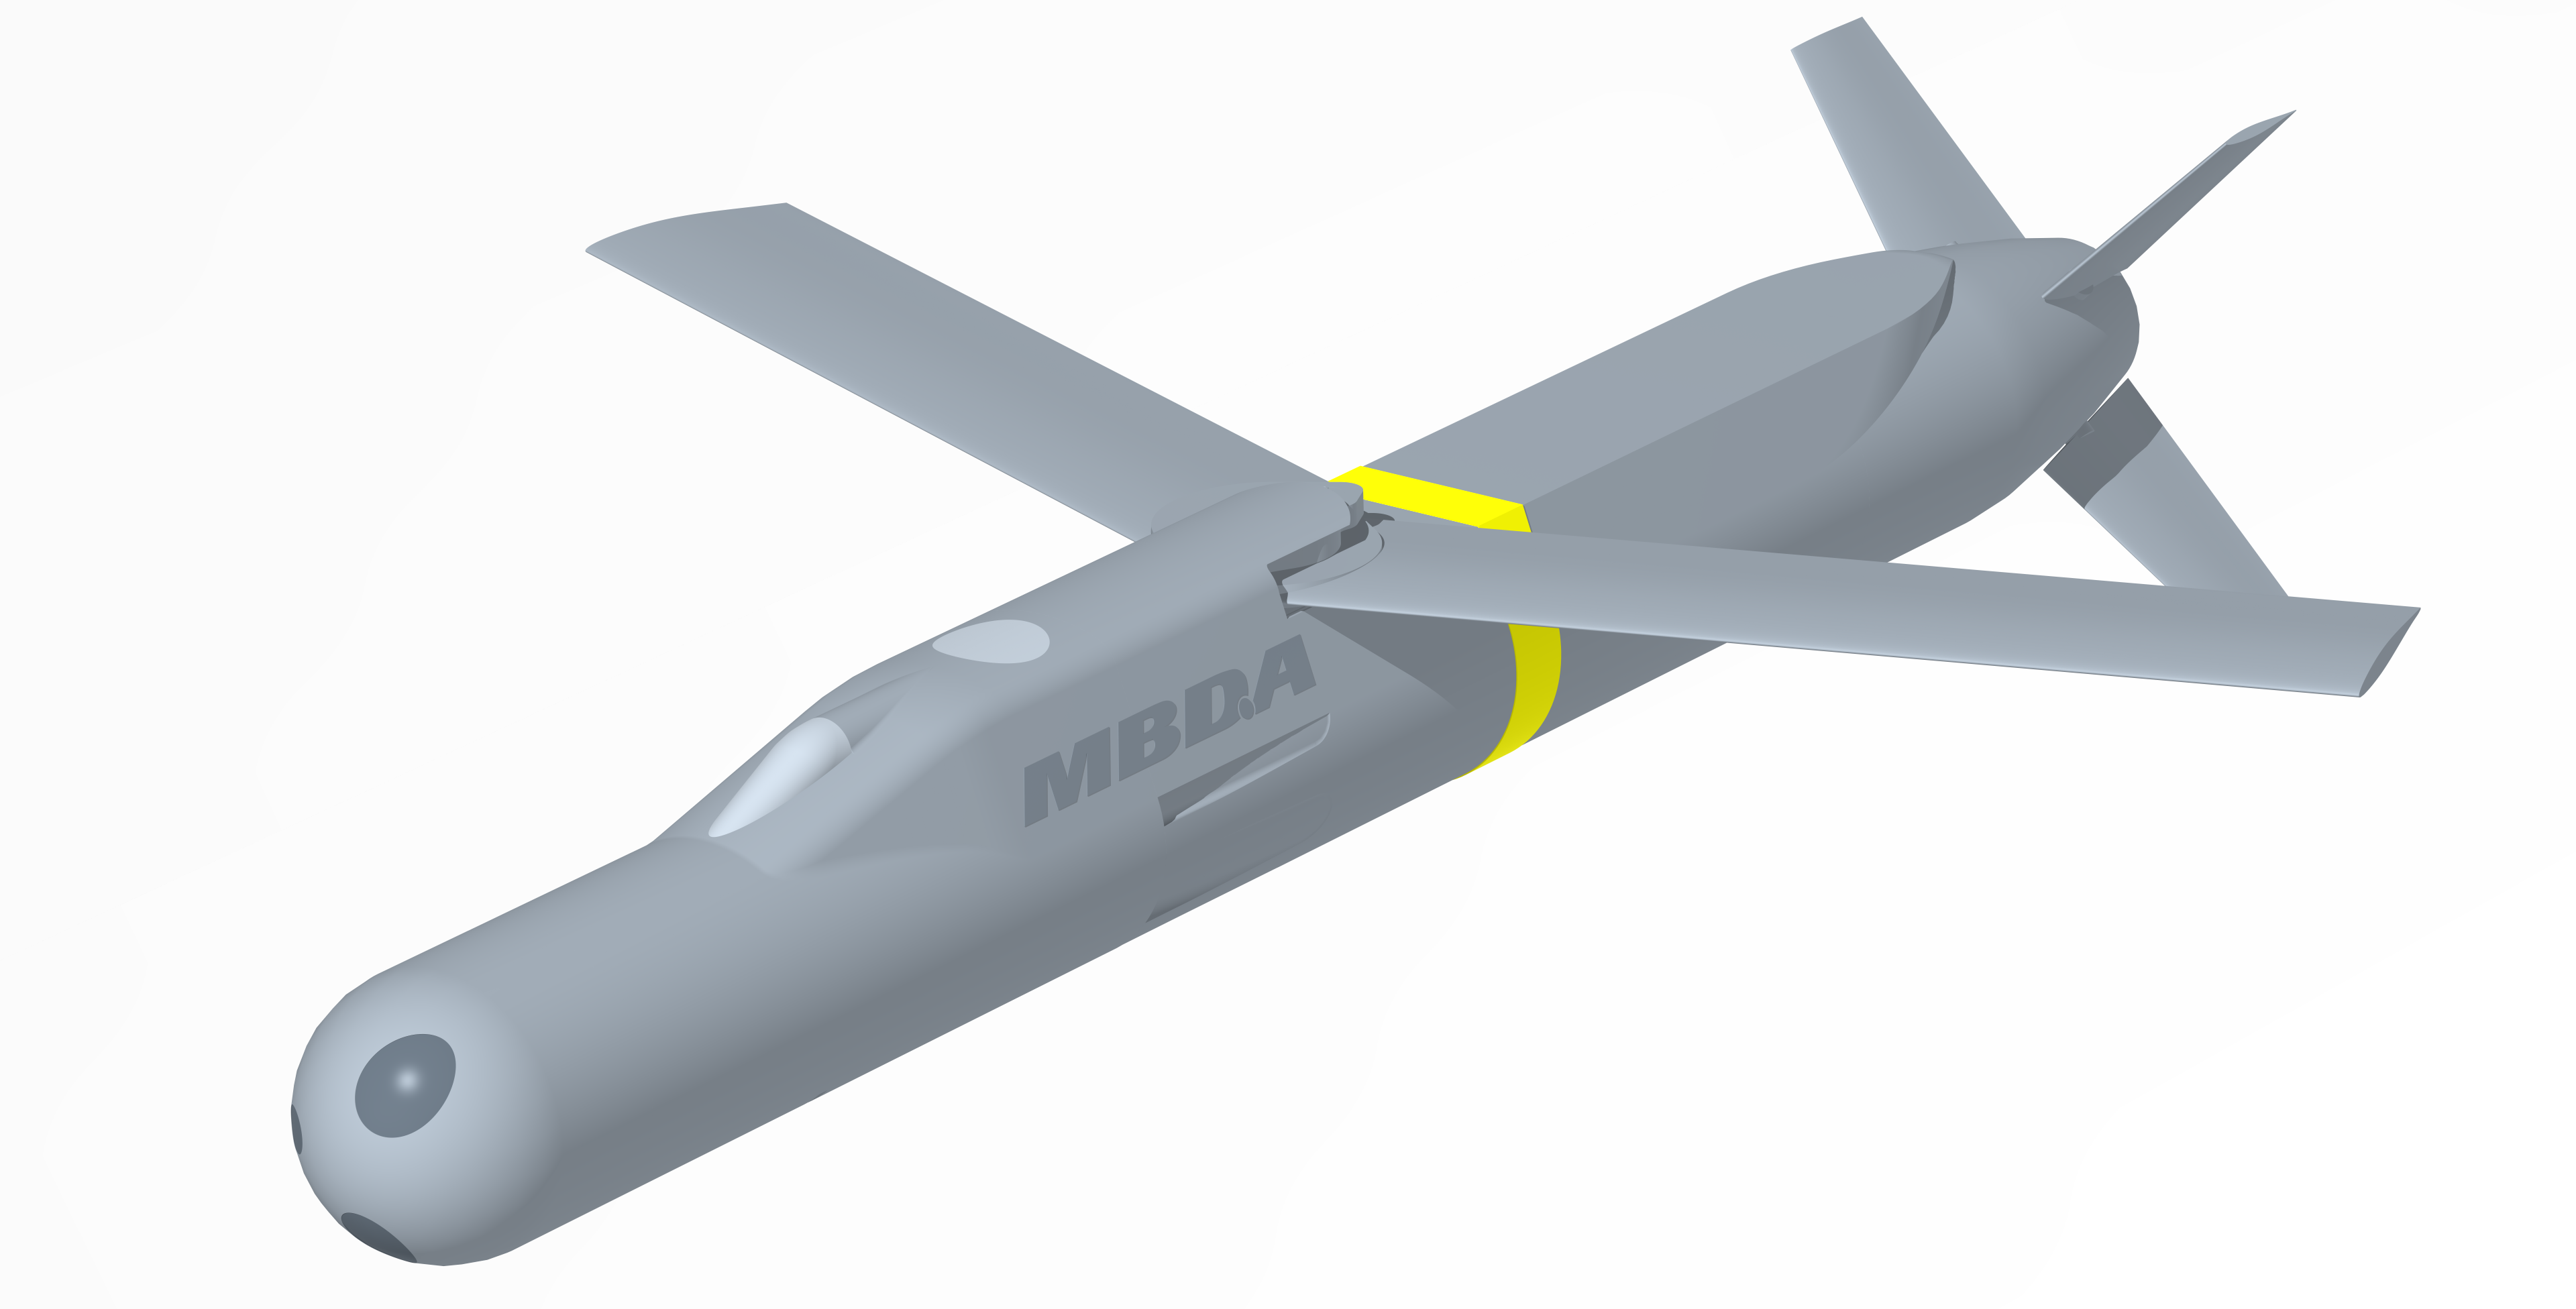 MBDA introduces the SmartGlider family of weapons - MBDA